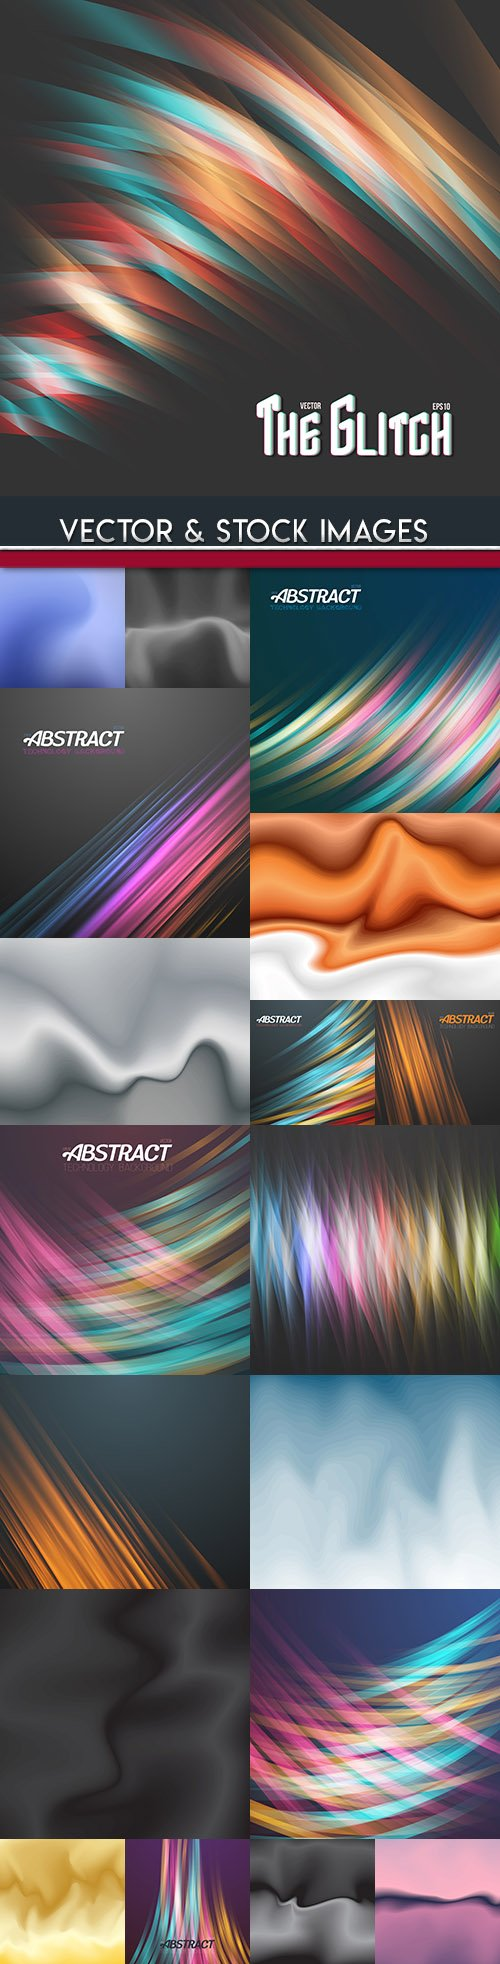 Abstract light effect and blurred gradient background